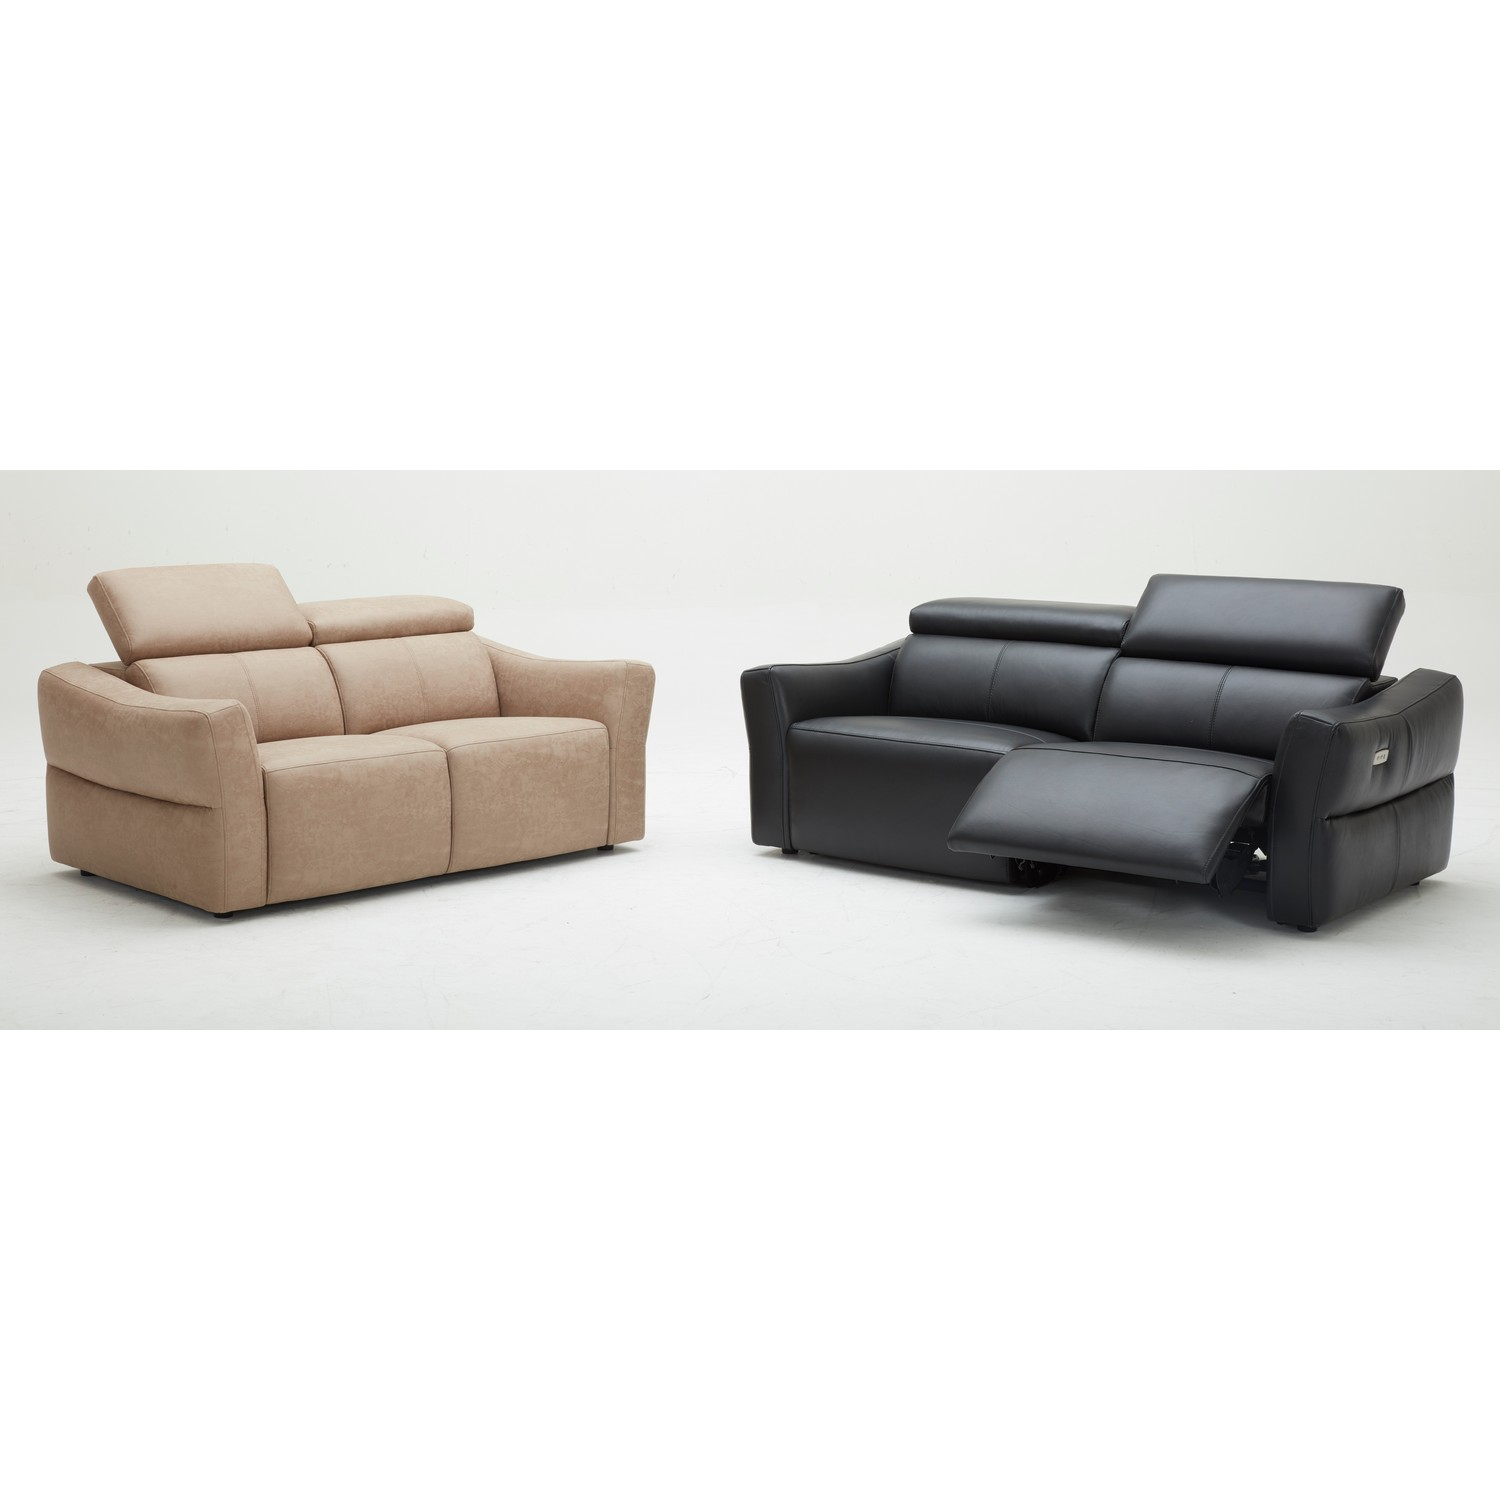 Km5018 Recliner Leather Sofa